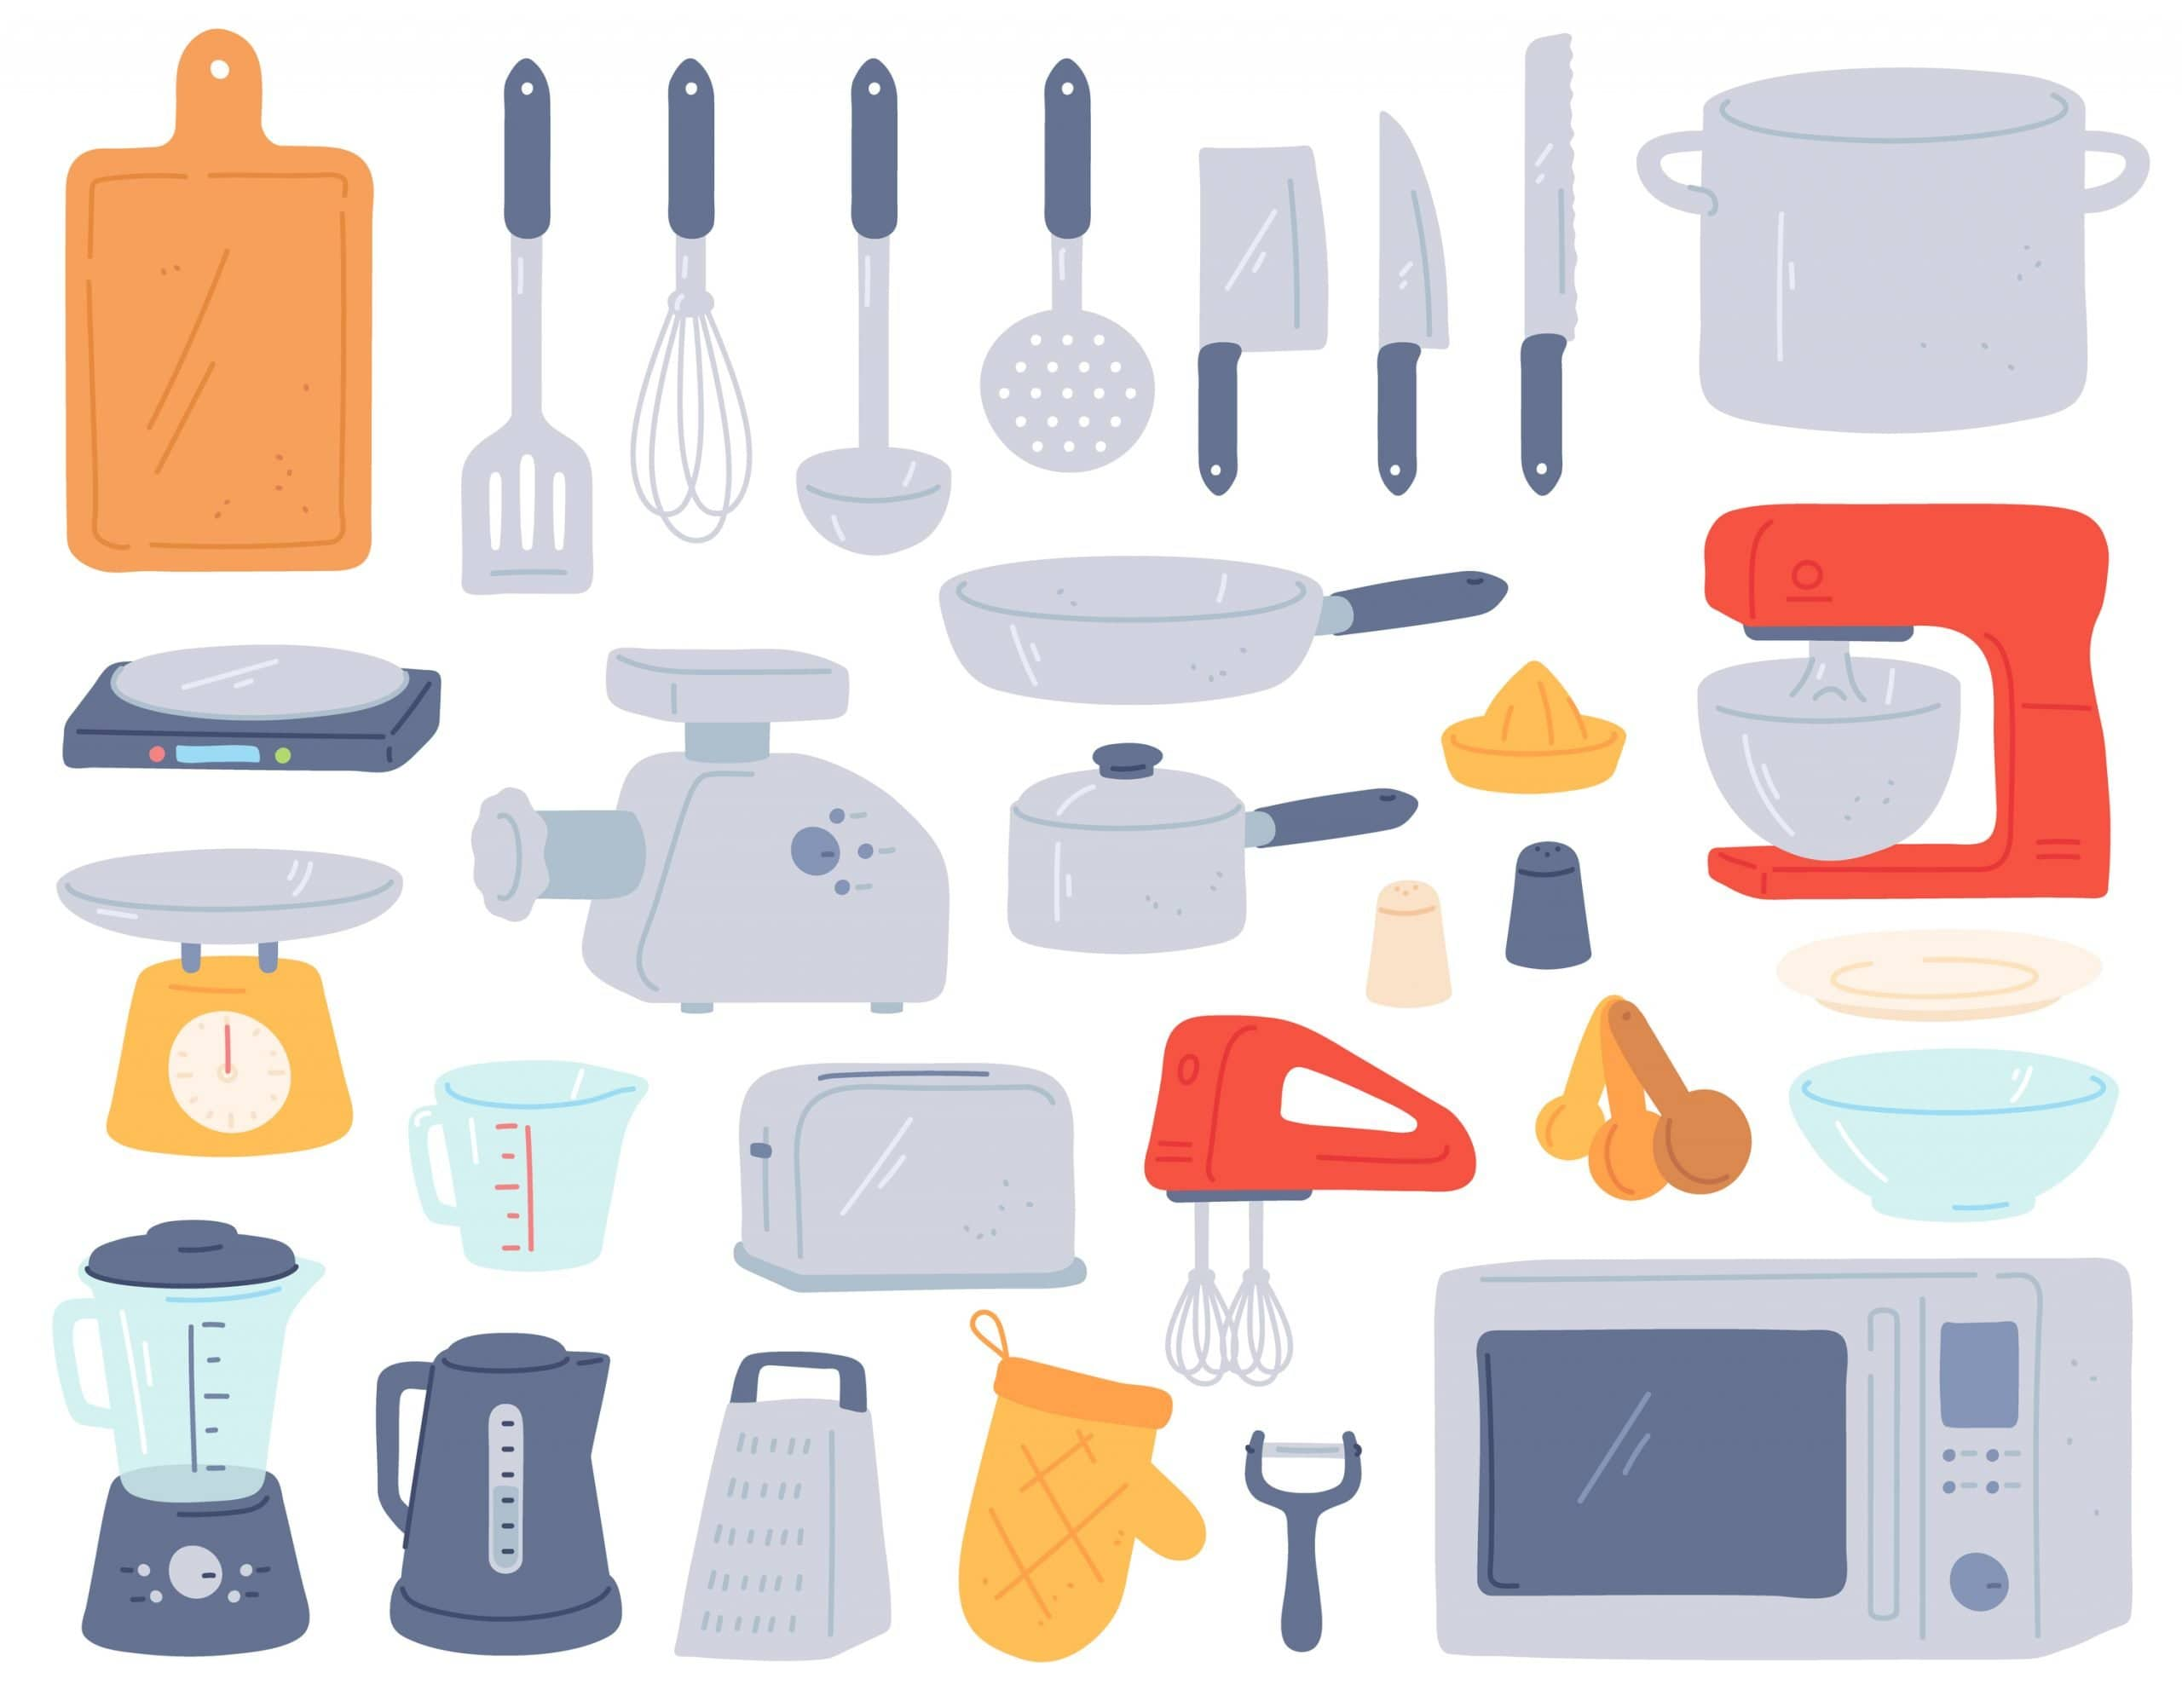 Kitchen tools. Cooking utensil and electric appliances for baking oven, mixer, scales, mincer. Home cookware in minimalist style vector set. Toaster, jar for water and glass, frying pan and saucepan